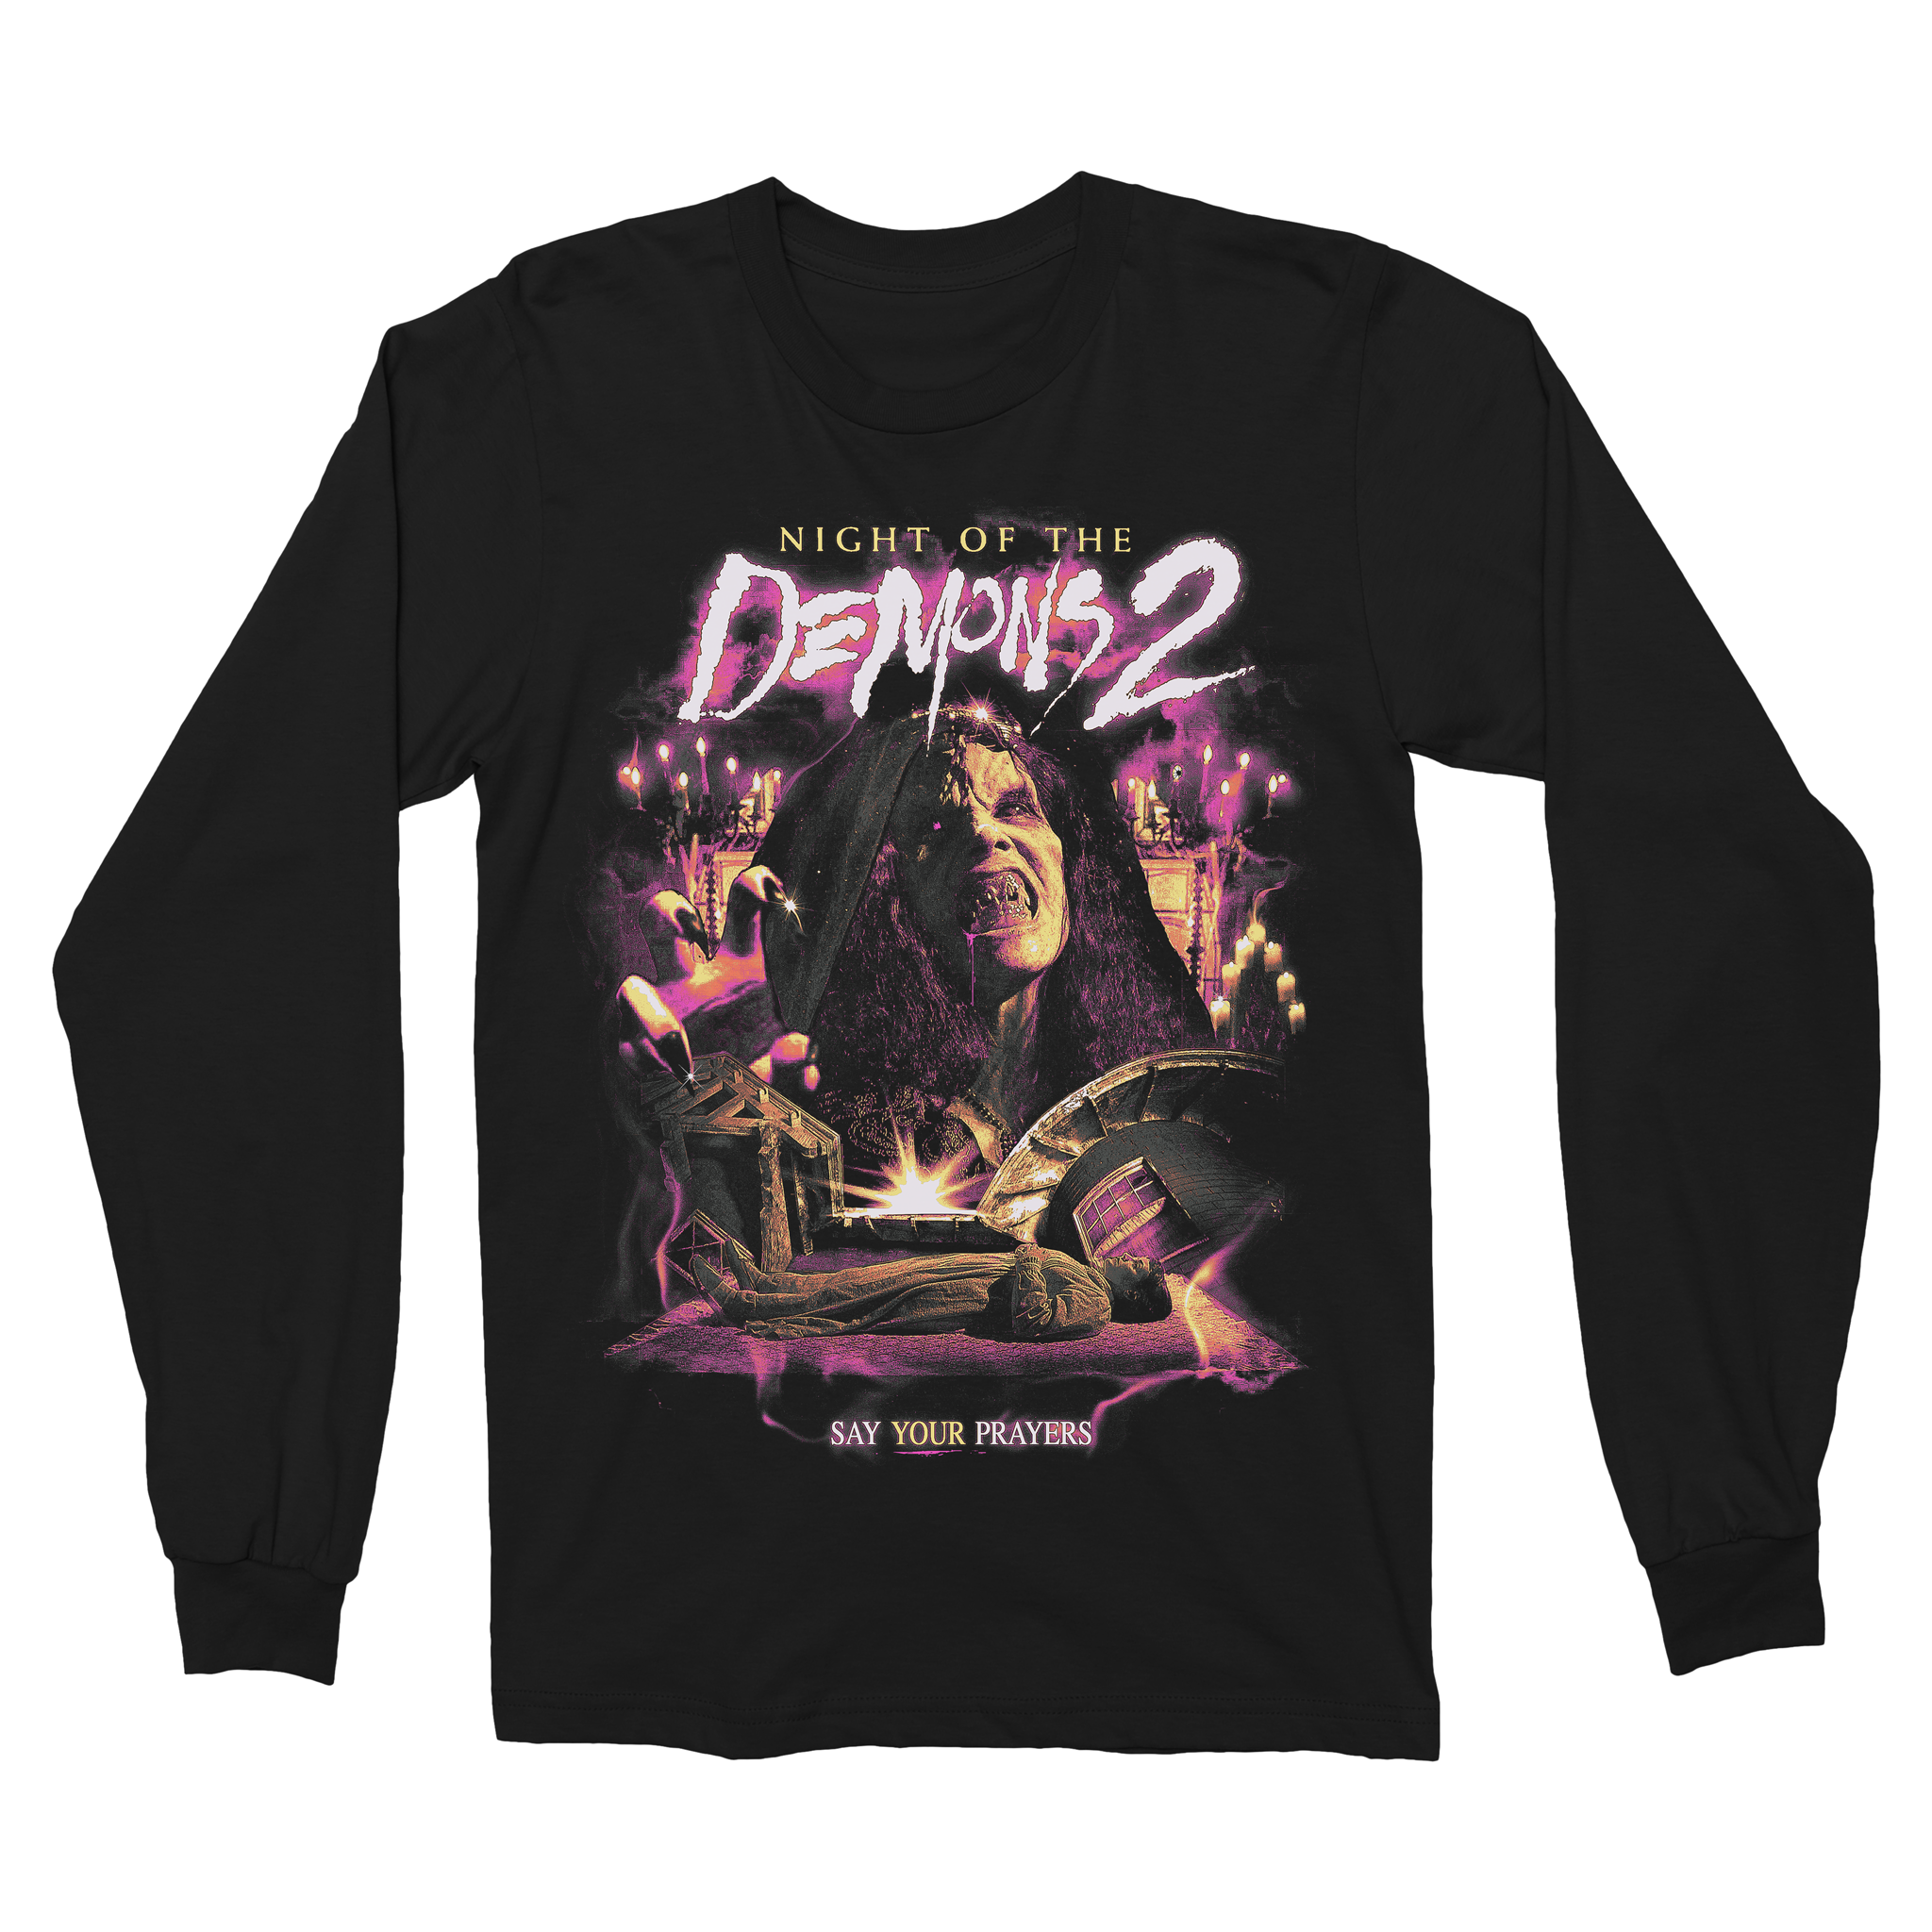 Night of the Demons 2 - Long Sleeve T-Shirt